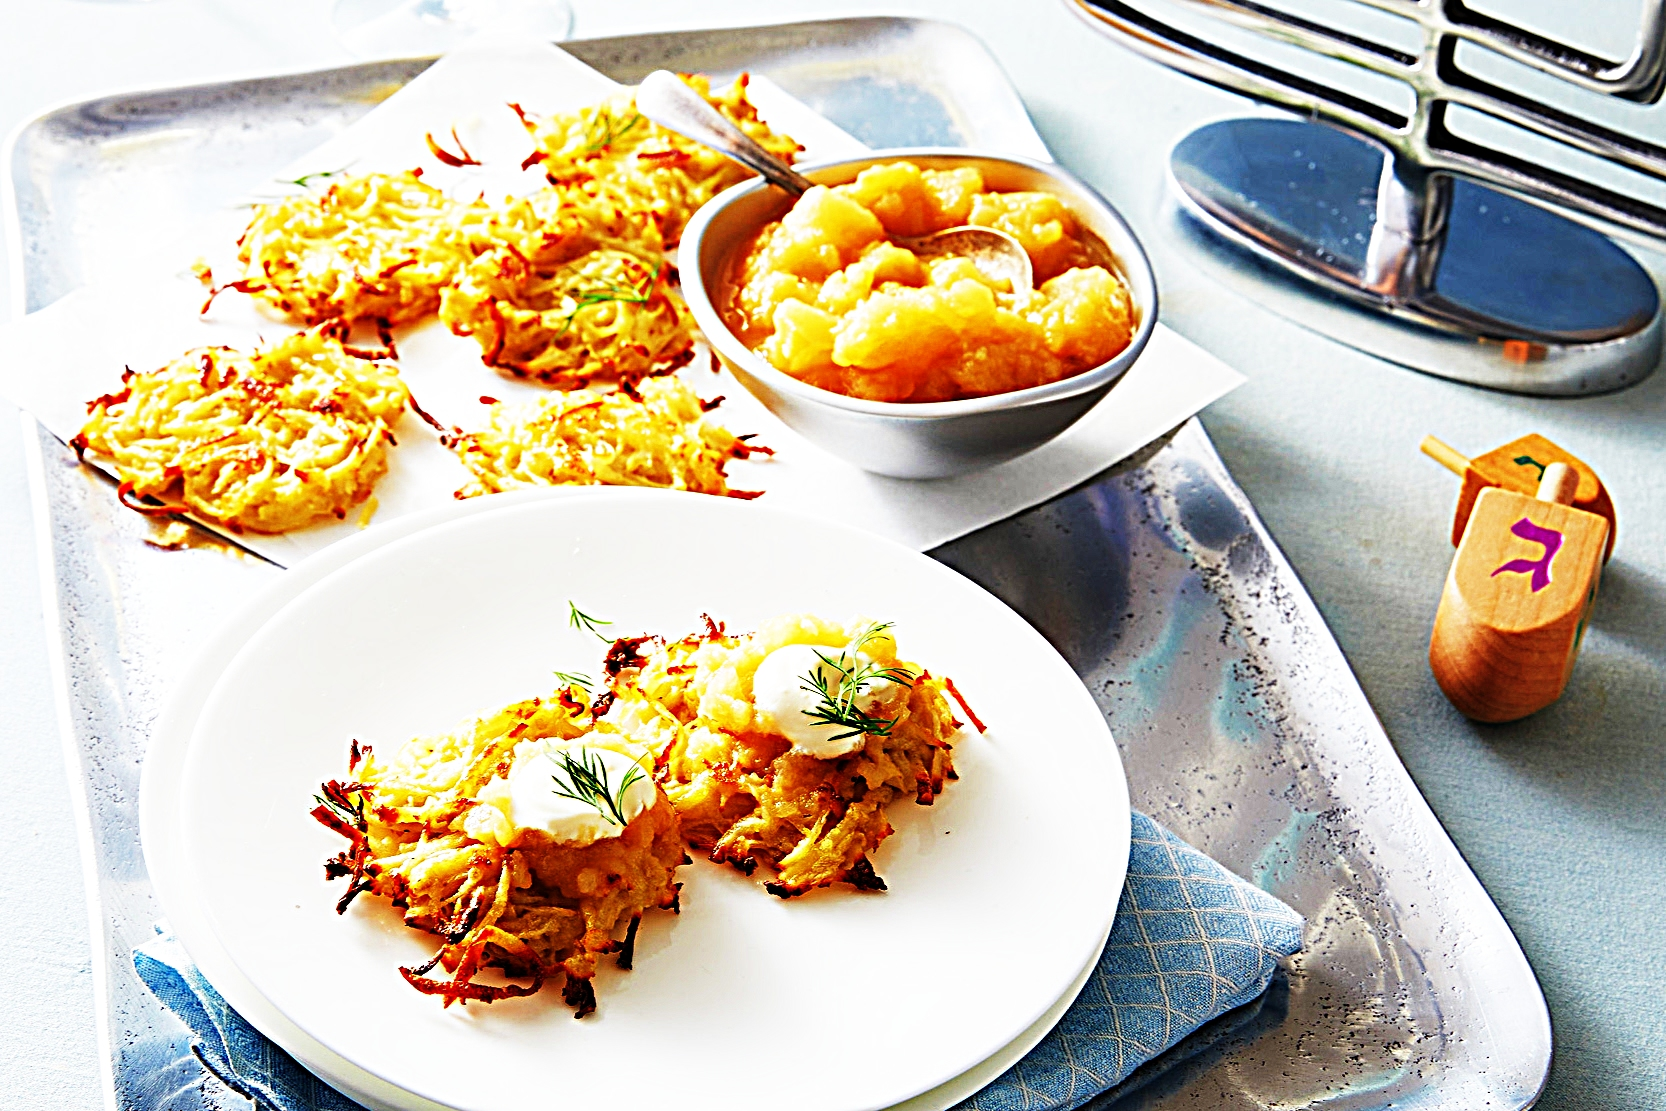 Stupid-Easy Recipe for Oven-Fried Potato Latkes with Applesauce (#1 Top-Rated)